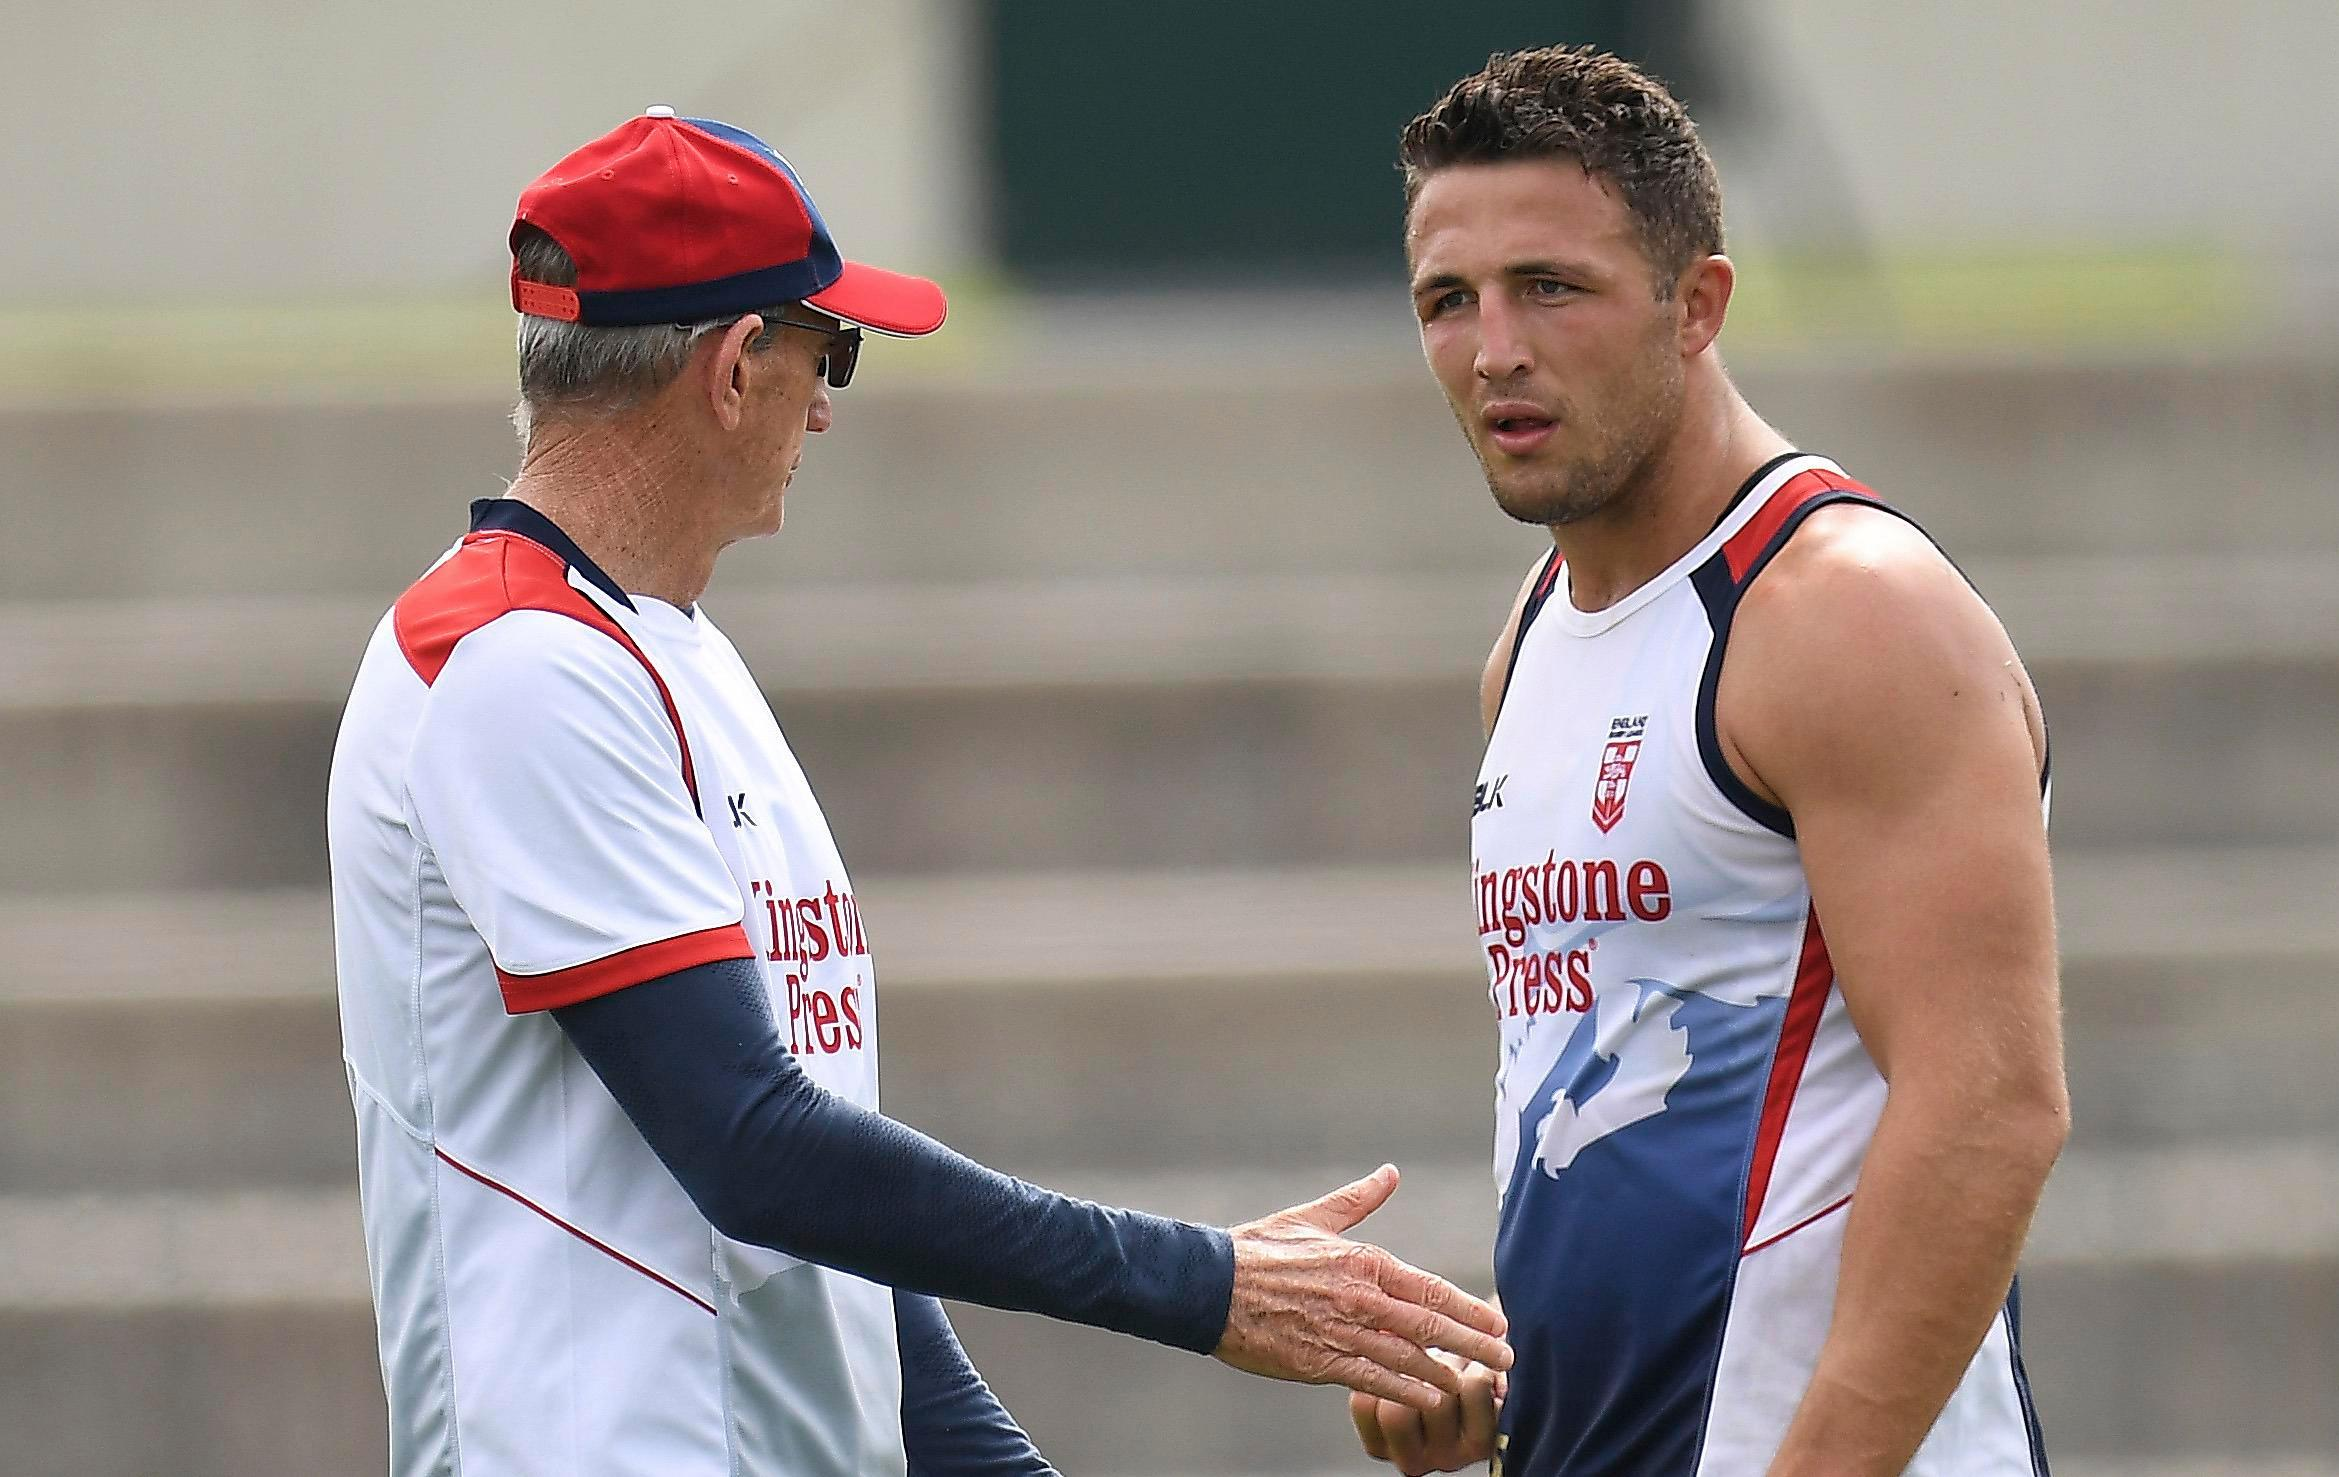 Sam Burgess is OK if new club boss Wayne Bennett criticises him in public